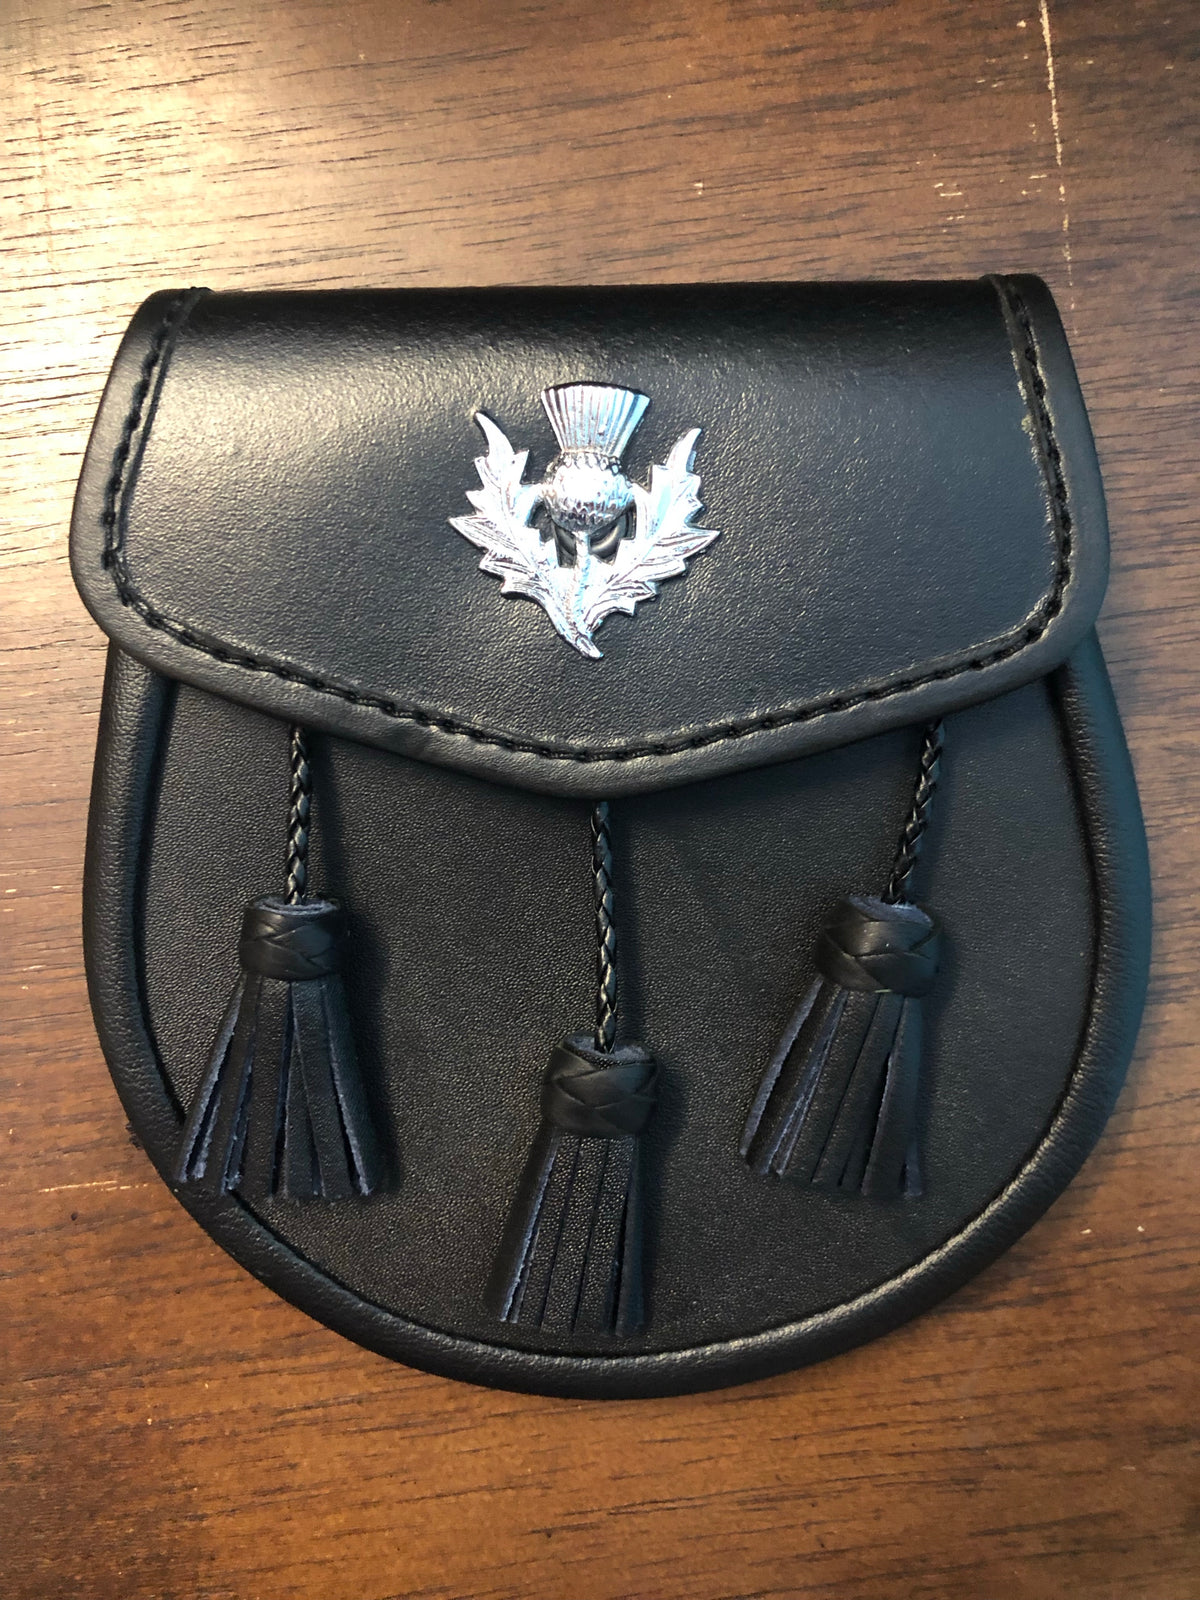 Black leather with Scottish Thistle